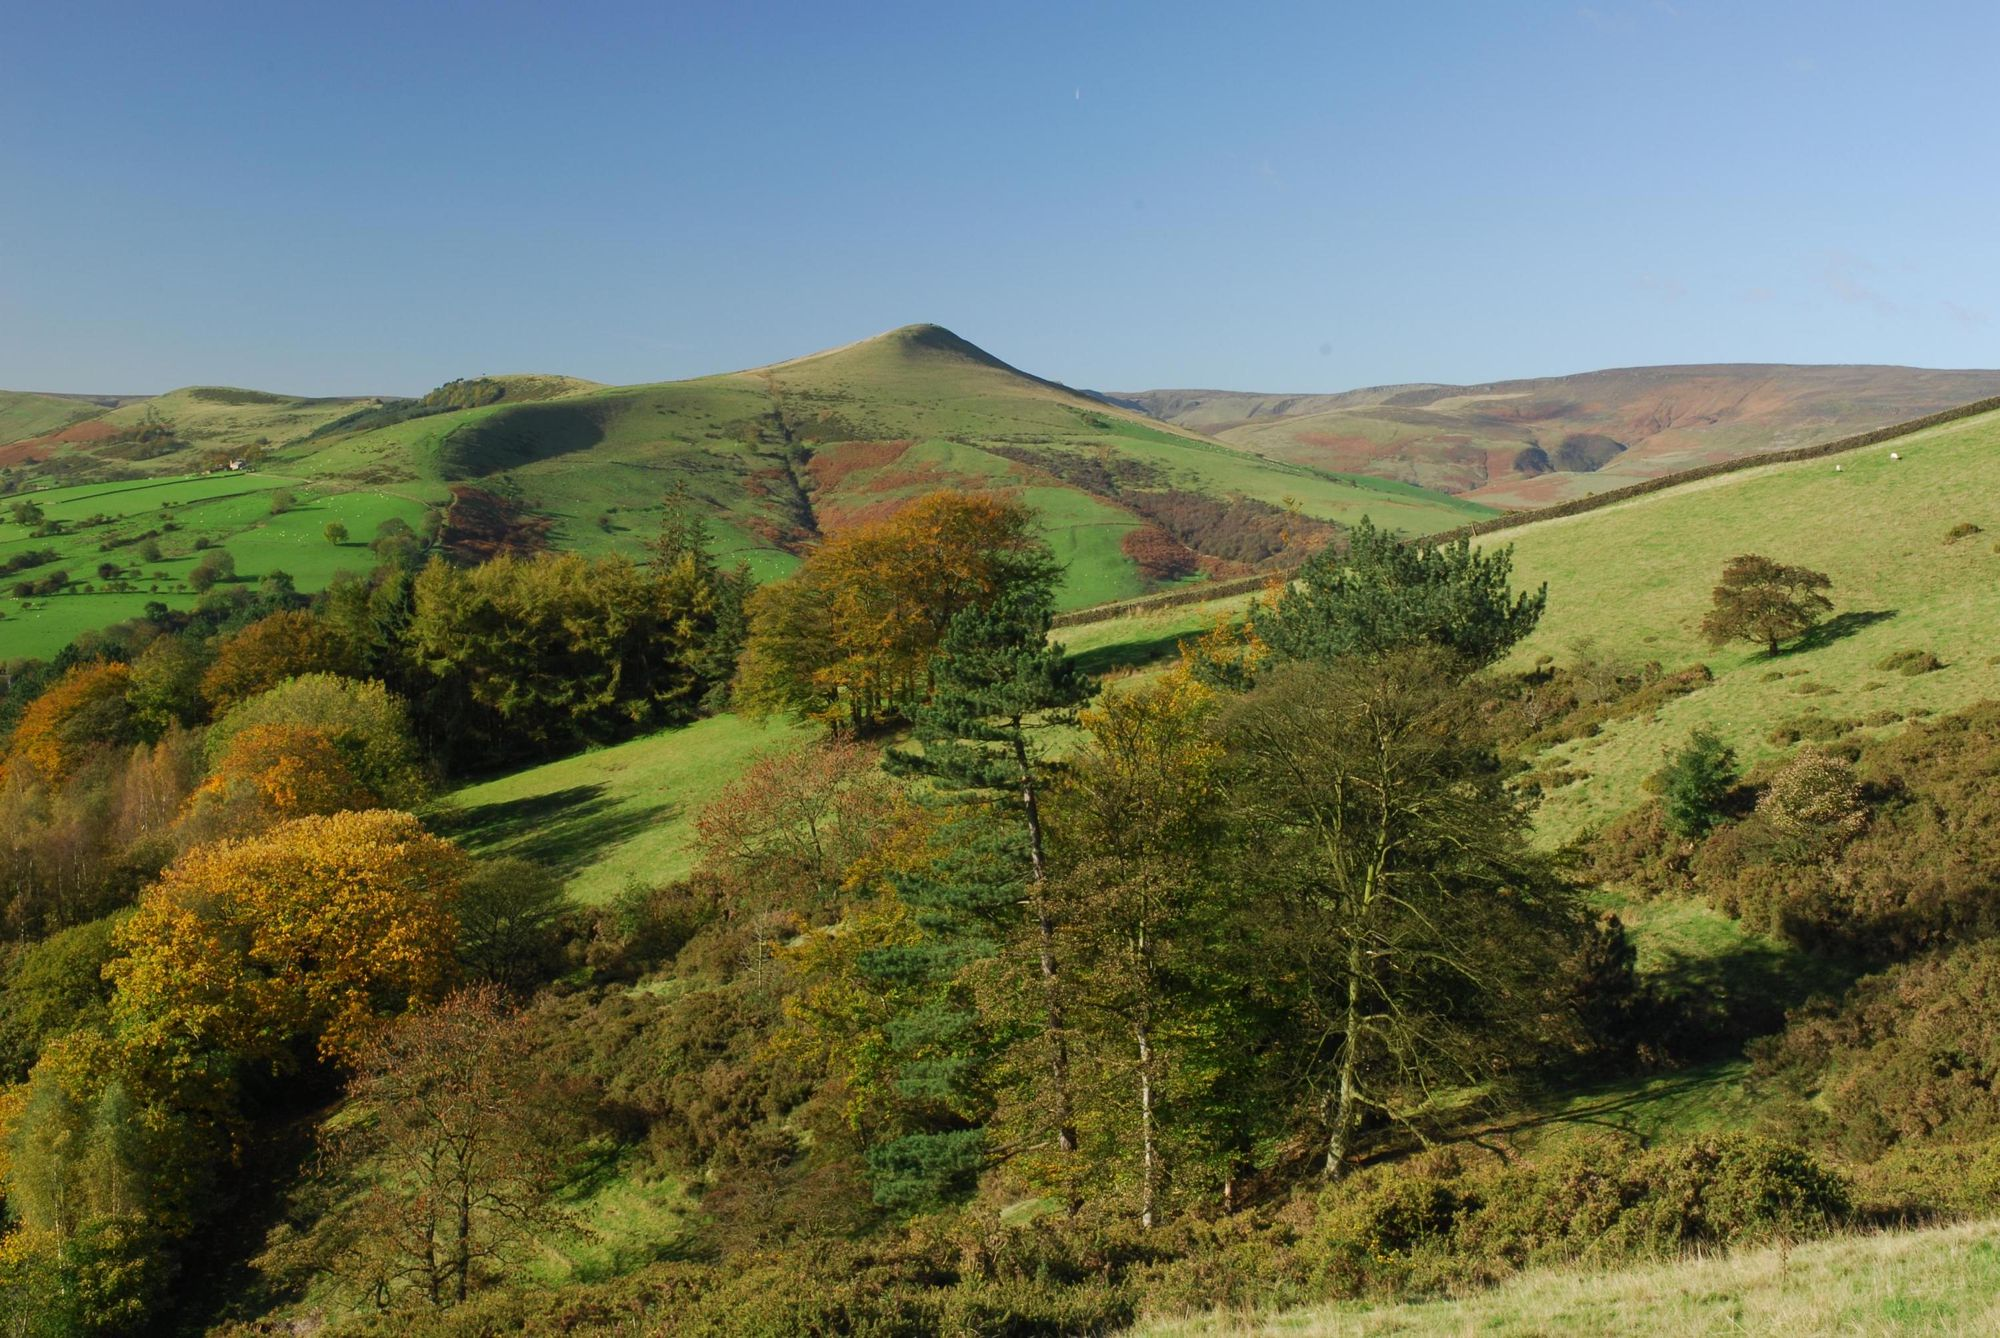 Hotels, Cottages, B&Bs & Glamping in Derbyshire & the Peak District